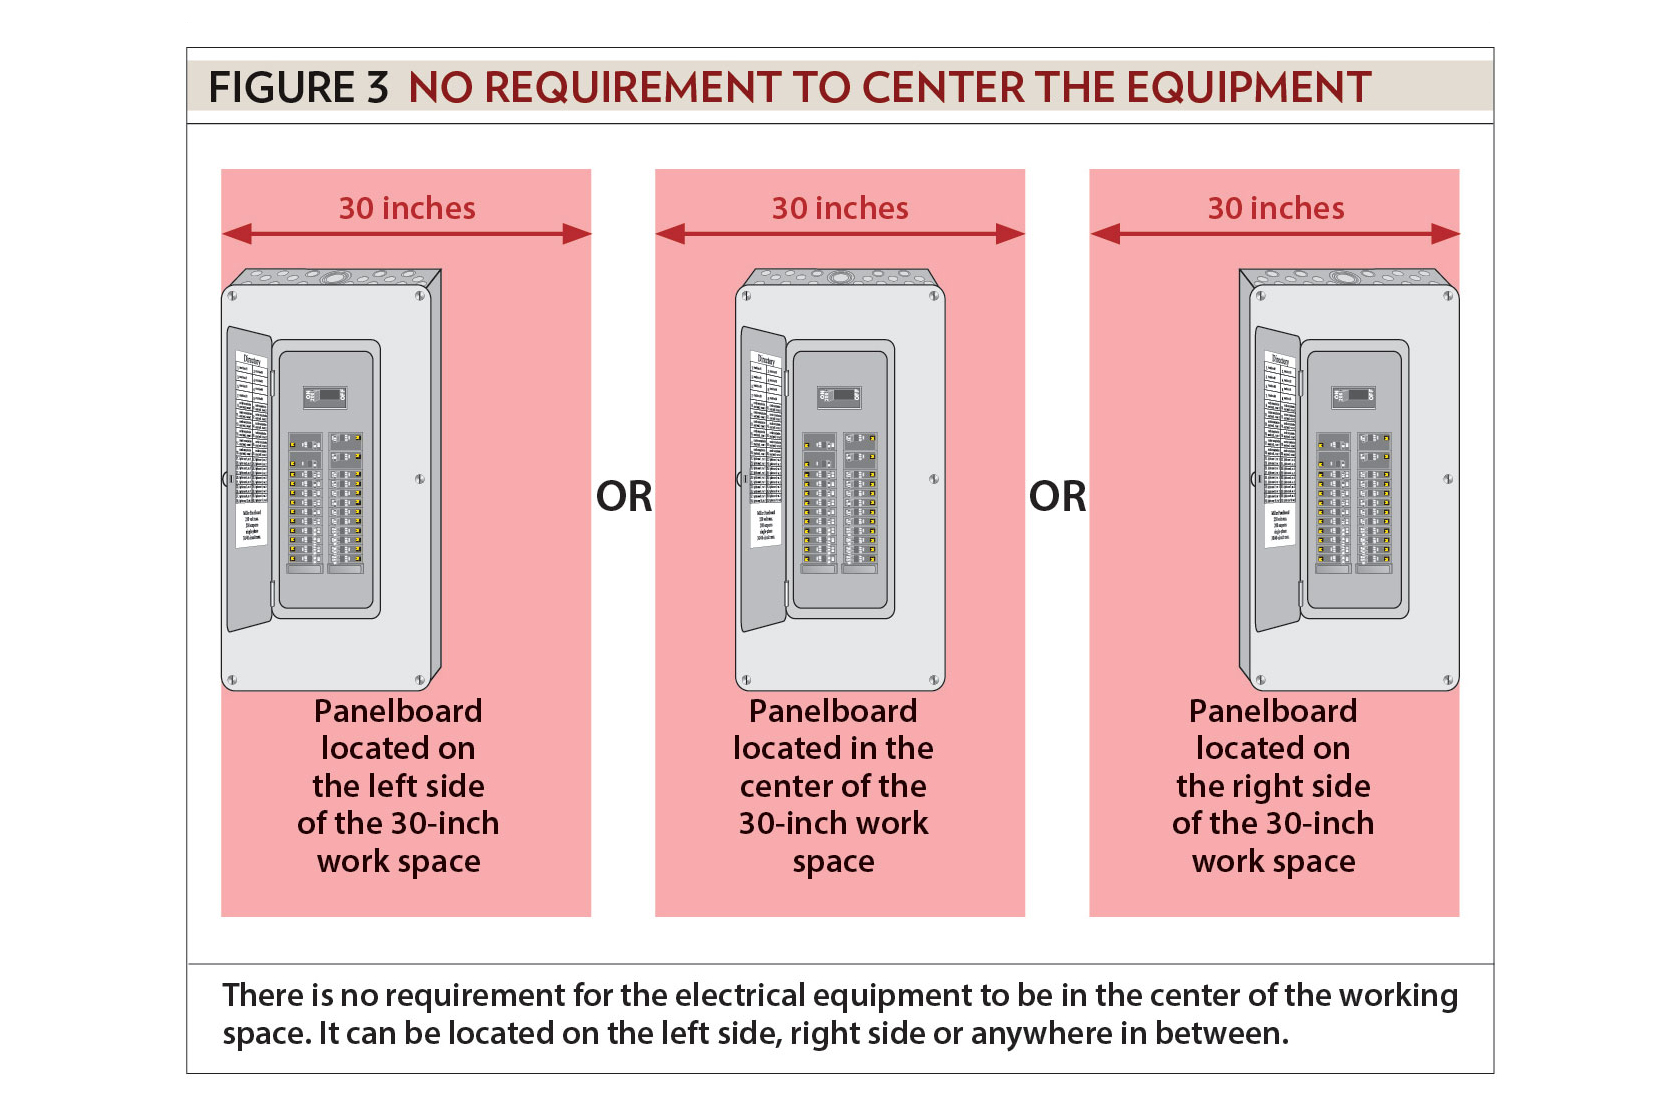 nec clearance requirements for electrical panels  | pinsdaddy.com